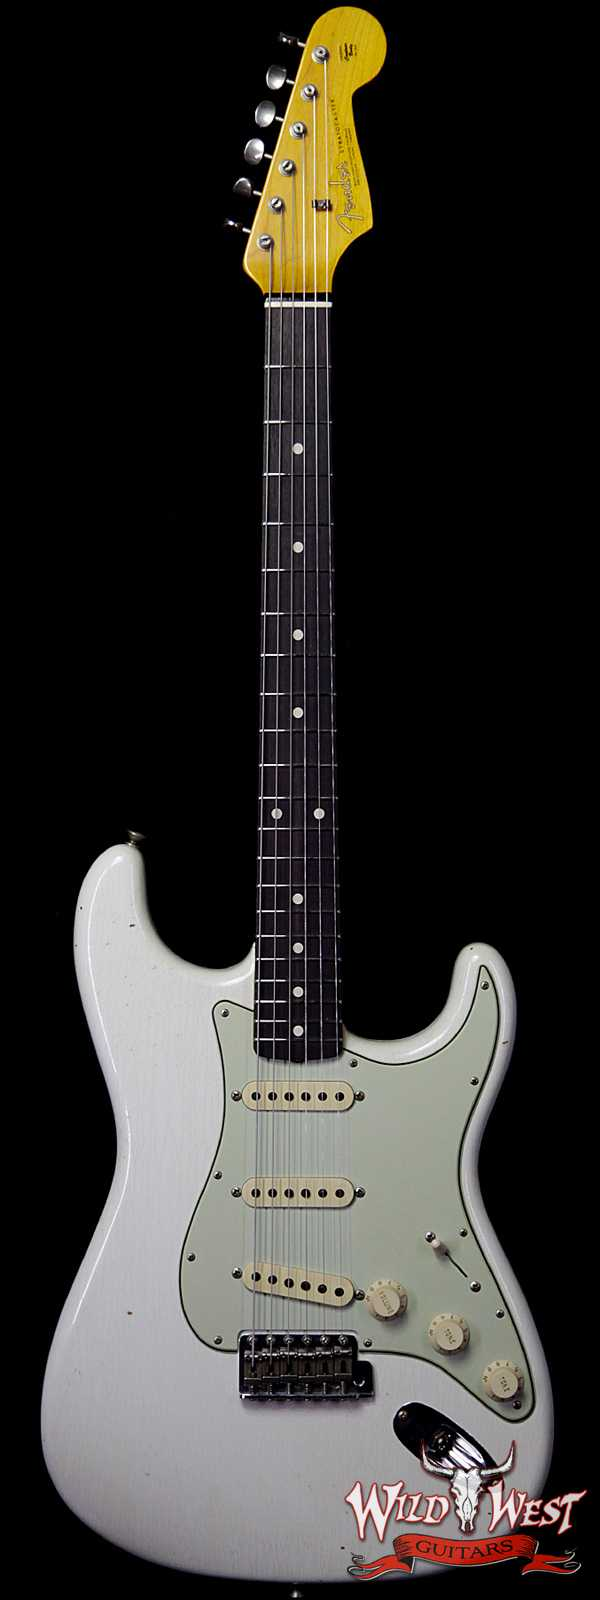 Fender Custom Shop 1963 Stratocaster Journeyman Relic with Dirty Neck Olympic White